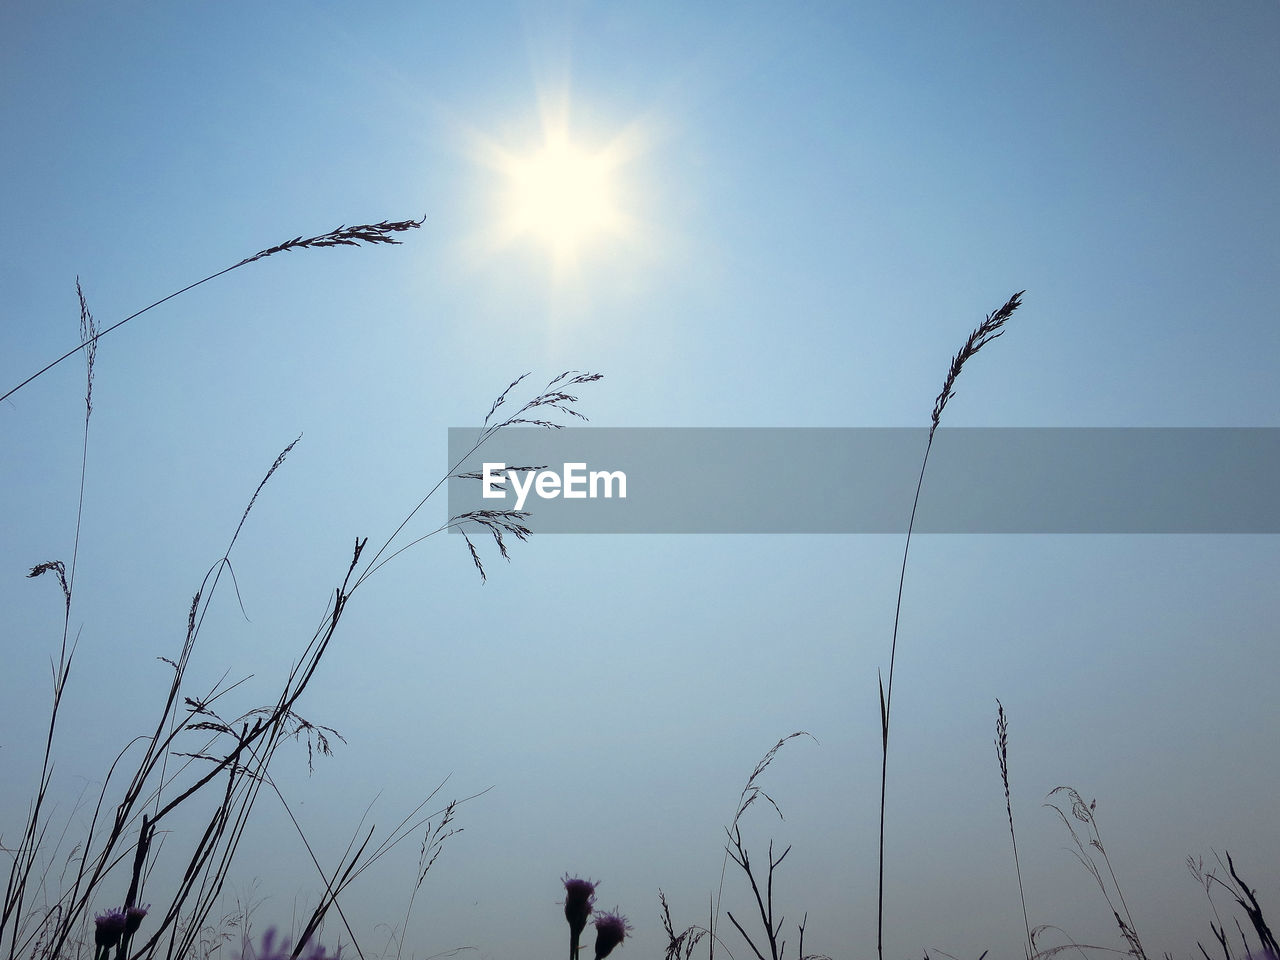 sun, nature, sunlight, beauty in nature, outdoors, low angle view, silhouette, growth, sky, clear sky, flying, tranquility, day, no people, scenics, bird